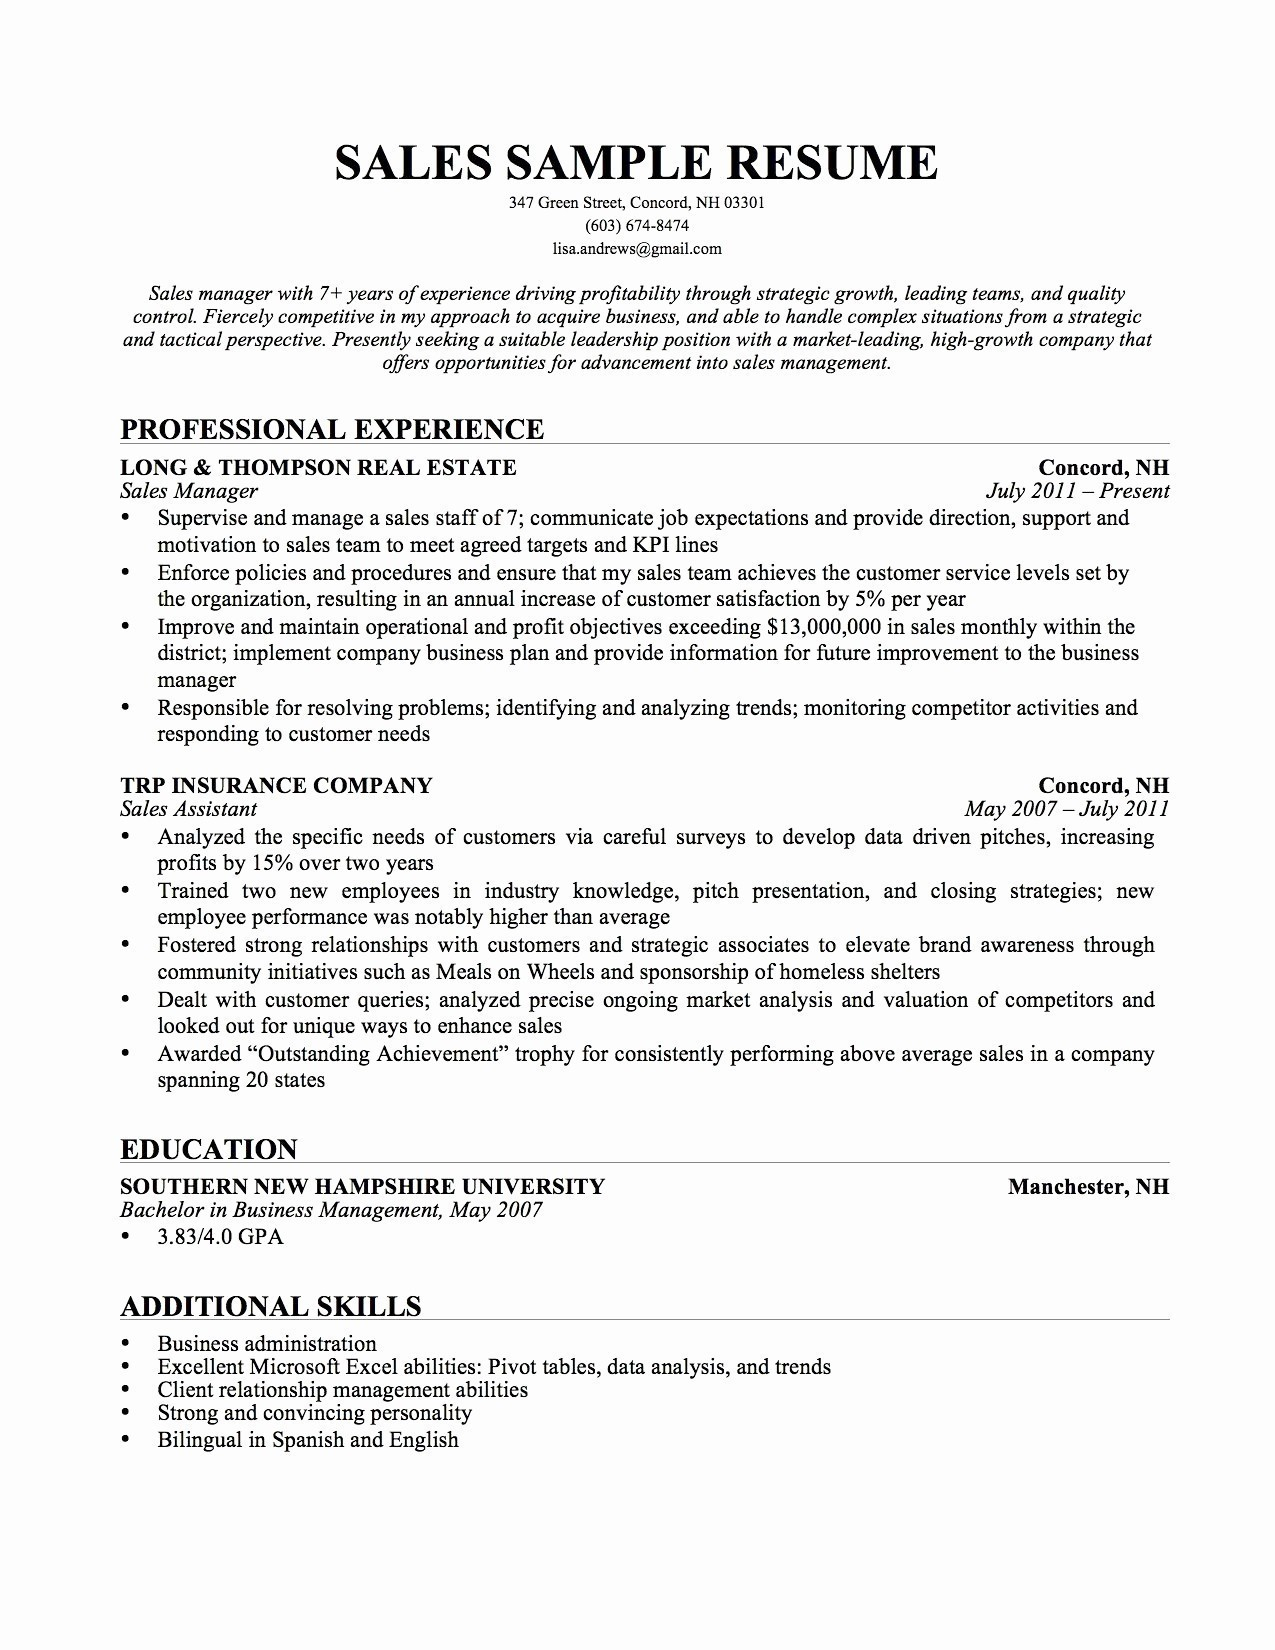 About Me In Resume - How Do I Write A Resume Awesome Resume About Me Best Business